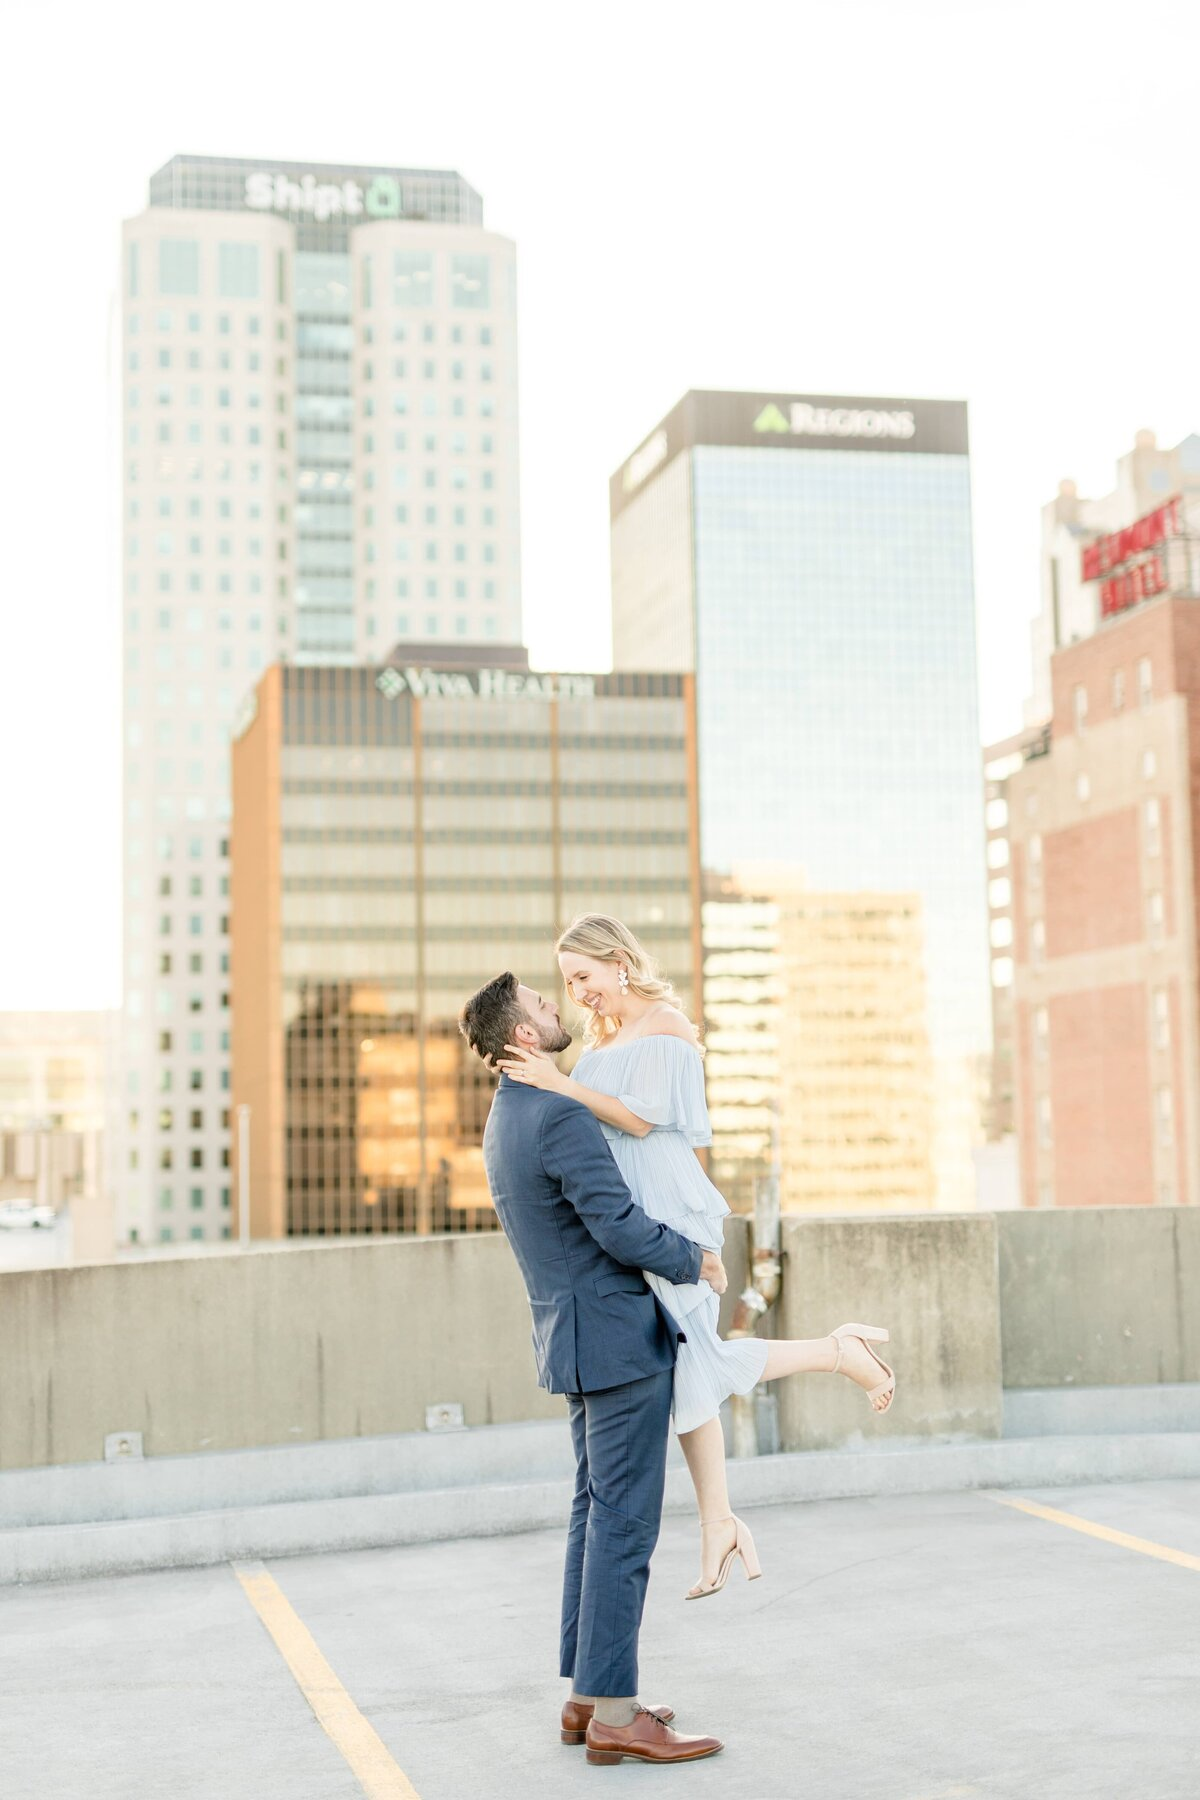 Best Birmingham, Alabama Wedding Photographers - Katie & Alec Headshots3